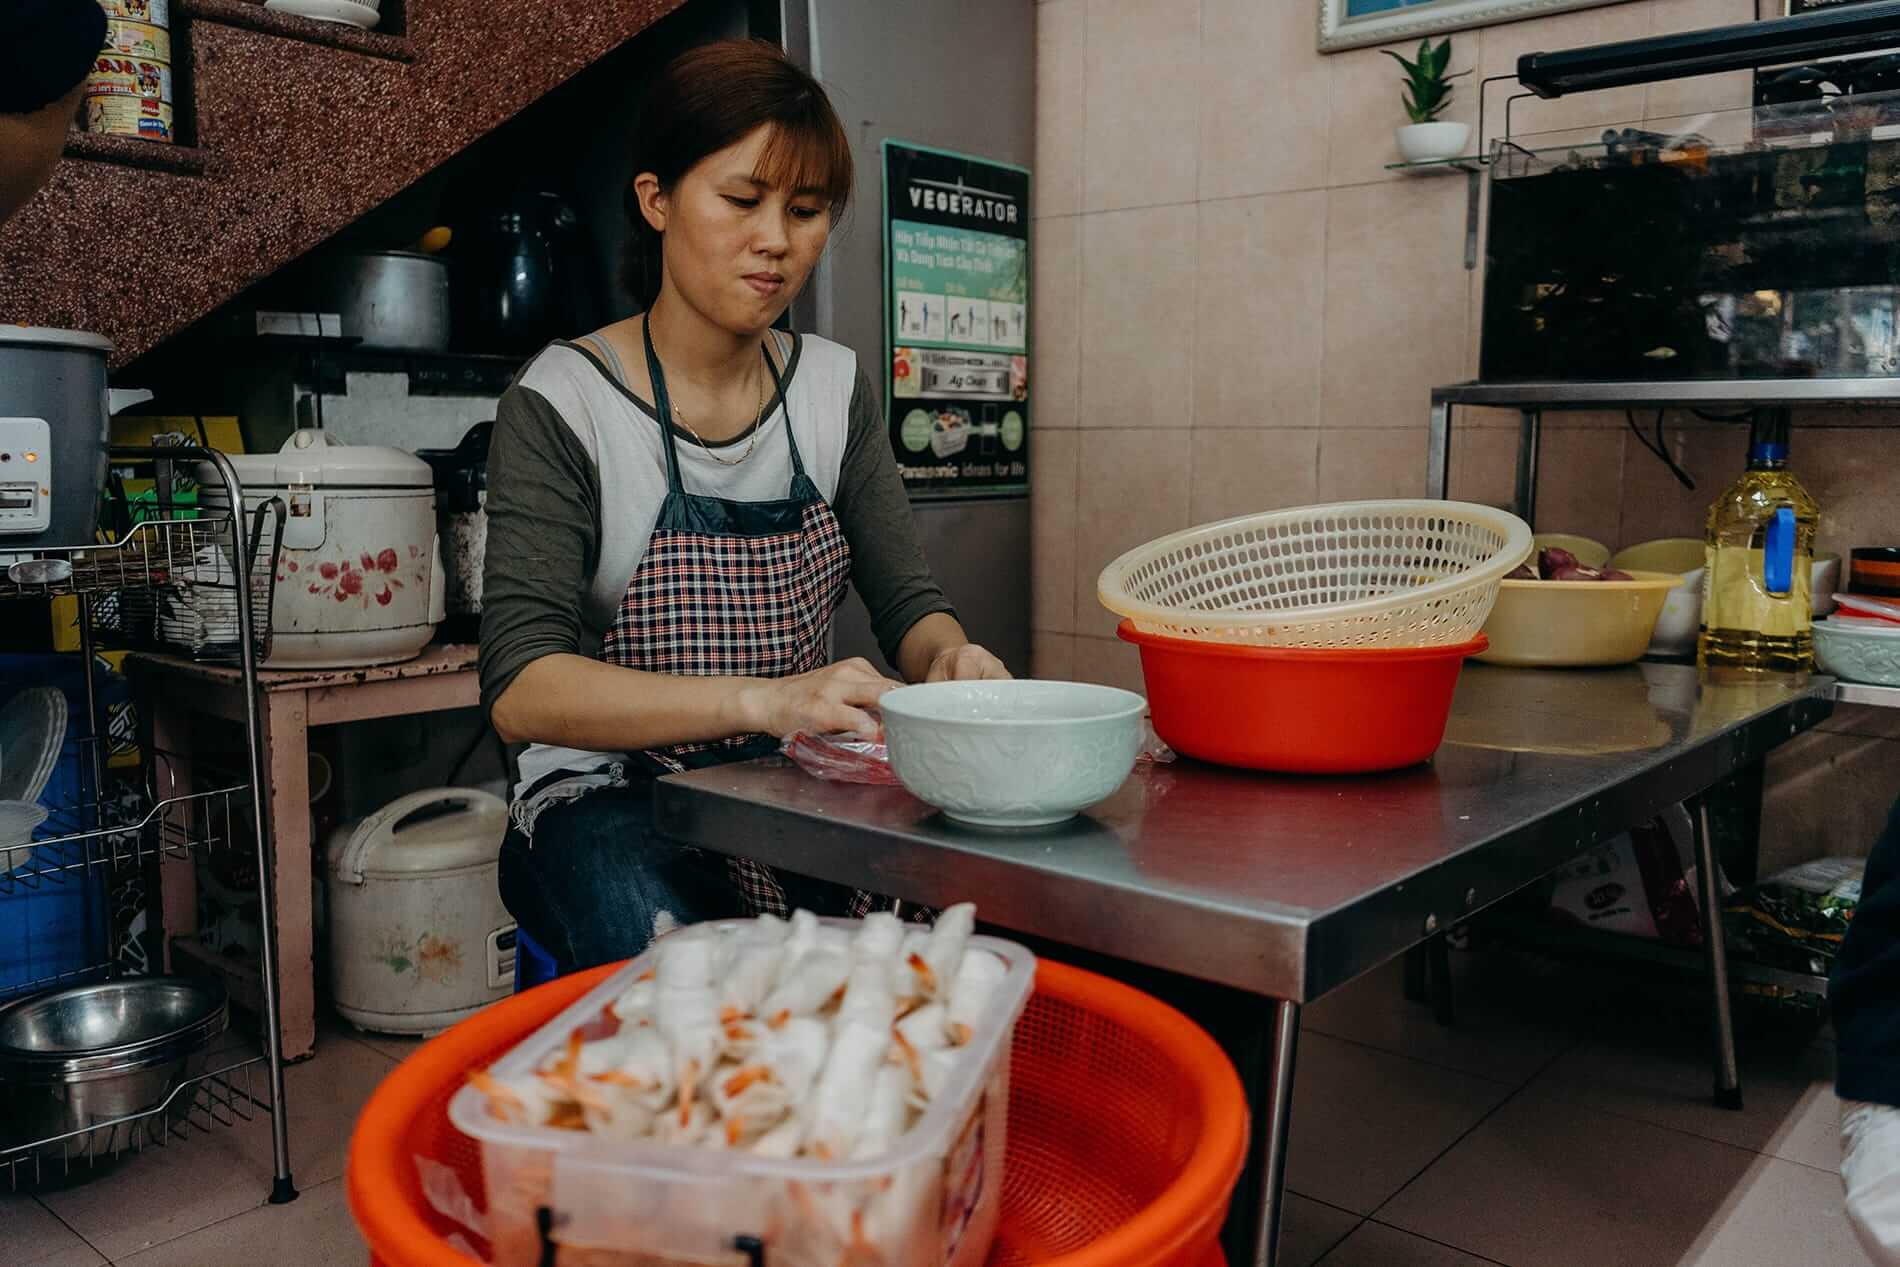 A local woman wraps shrimps in rice paper